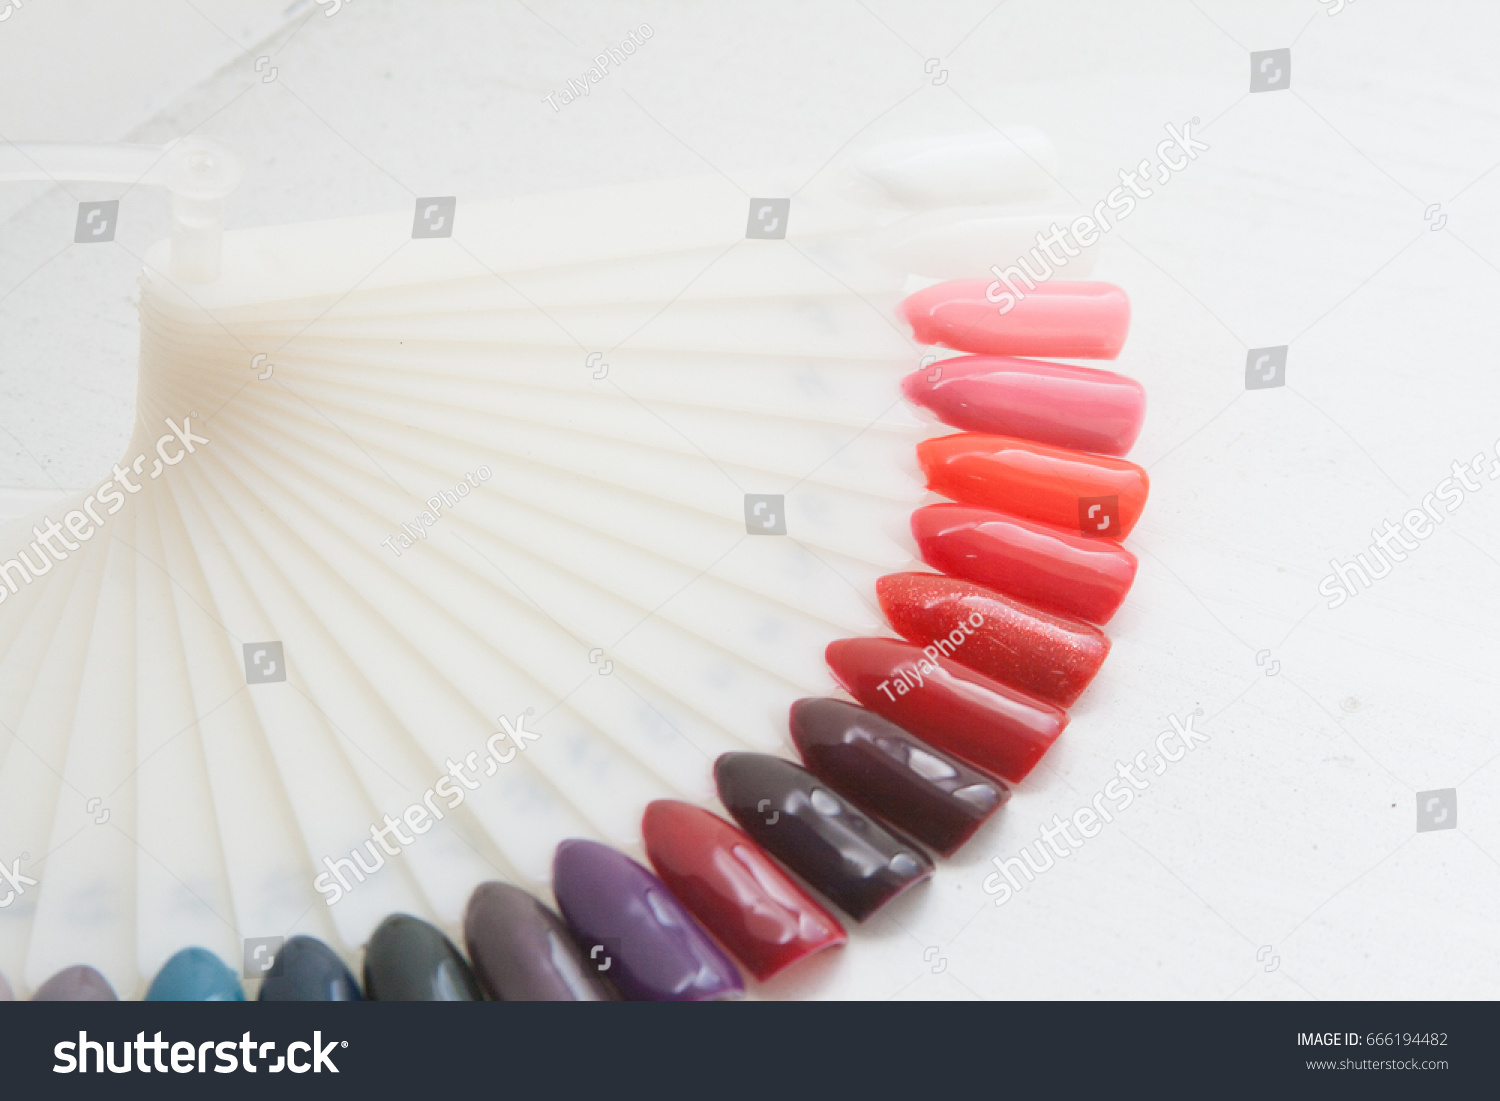 Nail Color Palette Stock Photo (Safe to Use) 666194482 - Shutterstock